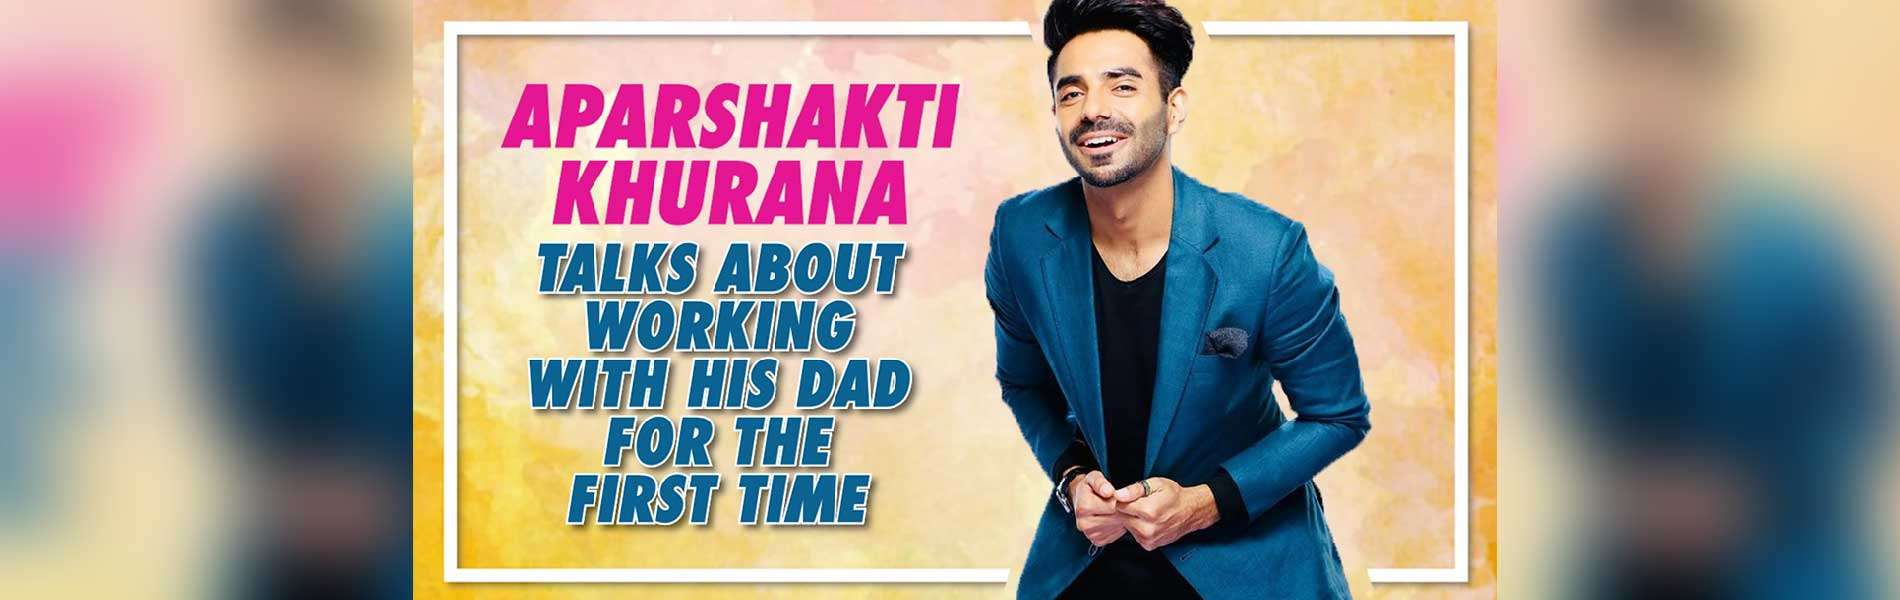 aparshakti-khurana-talks-about-working-with-his-dad-for-the-first-time